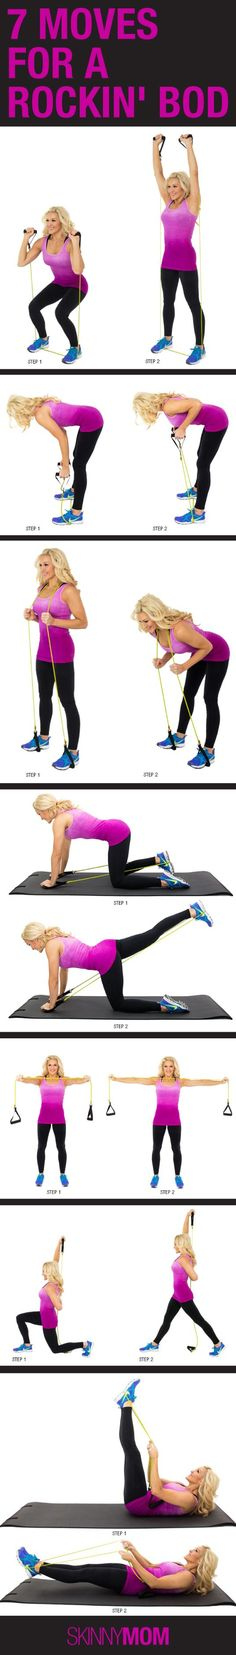 a Resistance Band to Tighten and Tone all Over Get back that rockin' body with these 7 moves!Get back that rockin' body with these 7 moves! Sport Fitness, Fitness Diet, Health Fitness, Fitness Memes, Body Fitness, Best Resistance Bands, Resistance Band Exercises, Resistance Workout, Resistance Tube